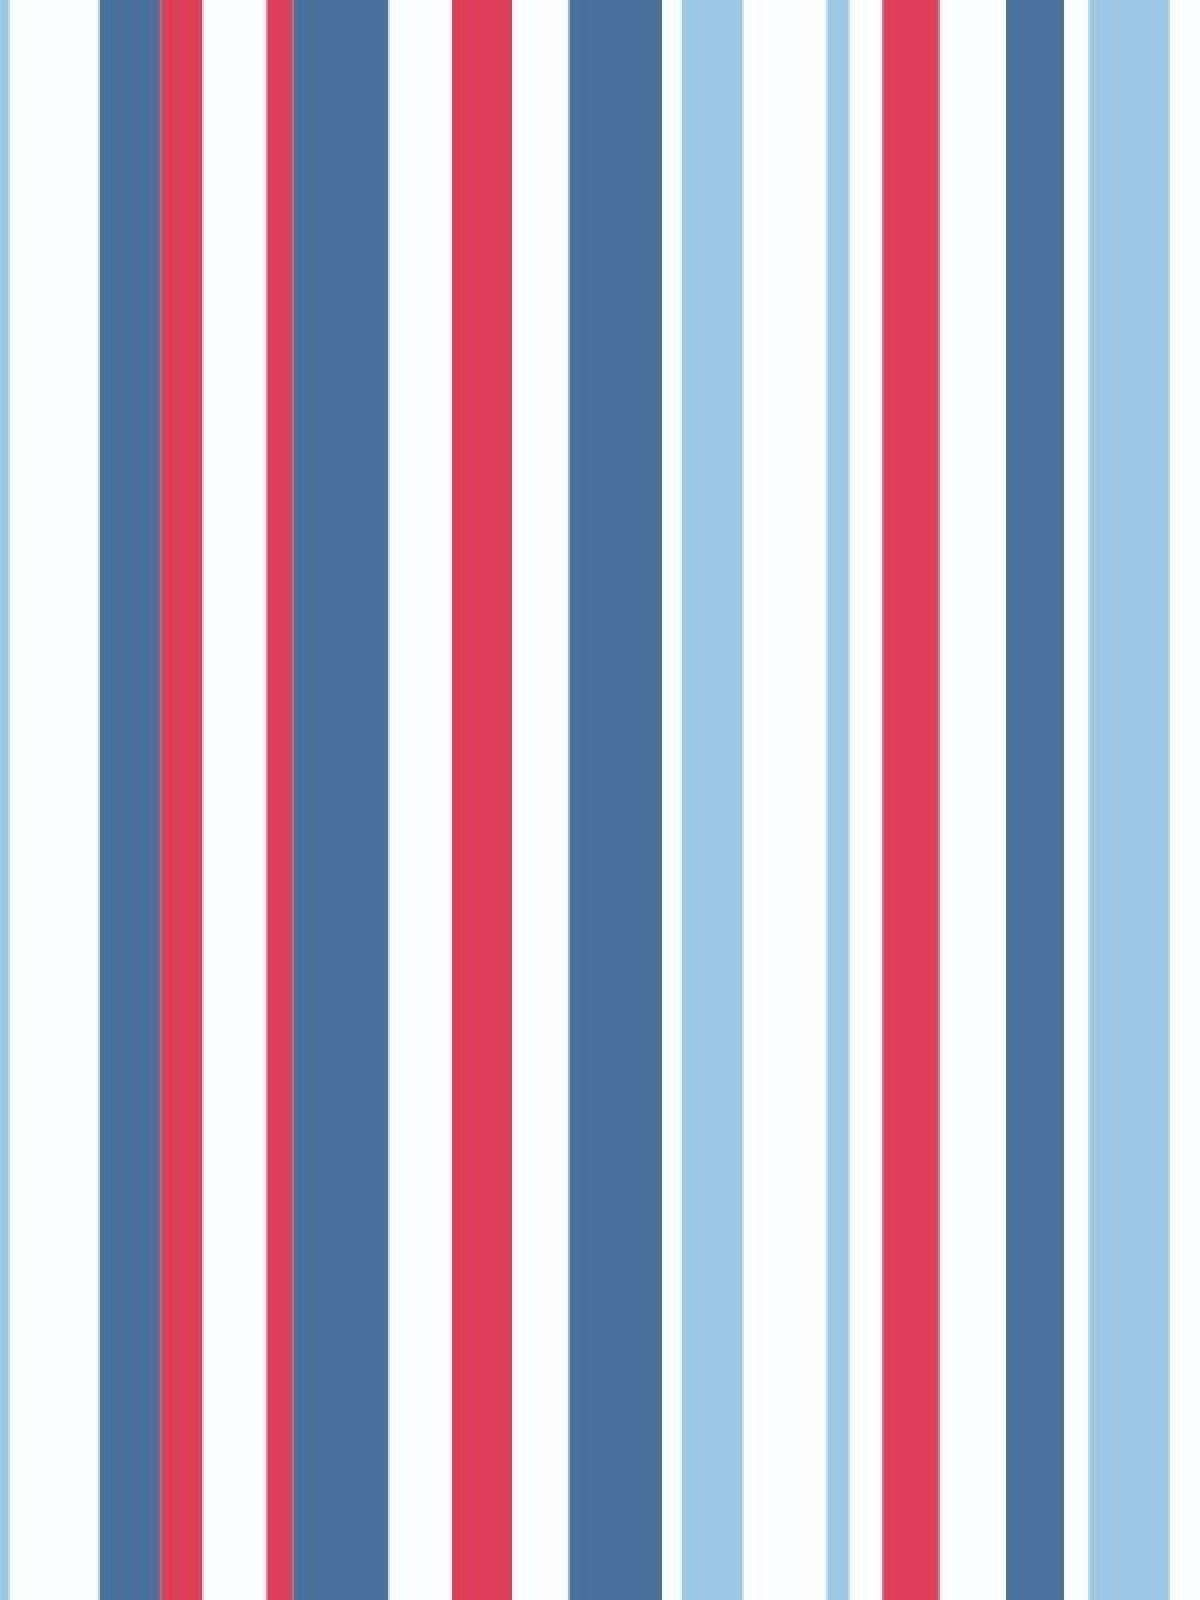 Pin By Stacy Alvarez On July 4th Striped Wallpaper Blue Red And White Wallpaper Nautical Wallpaper